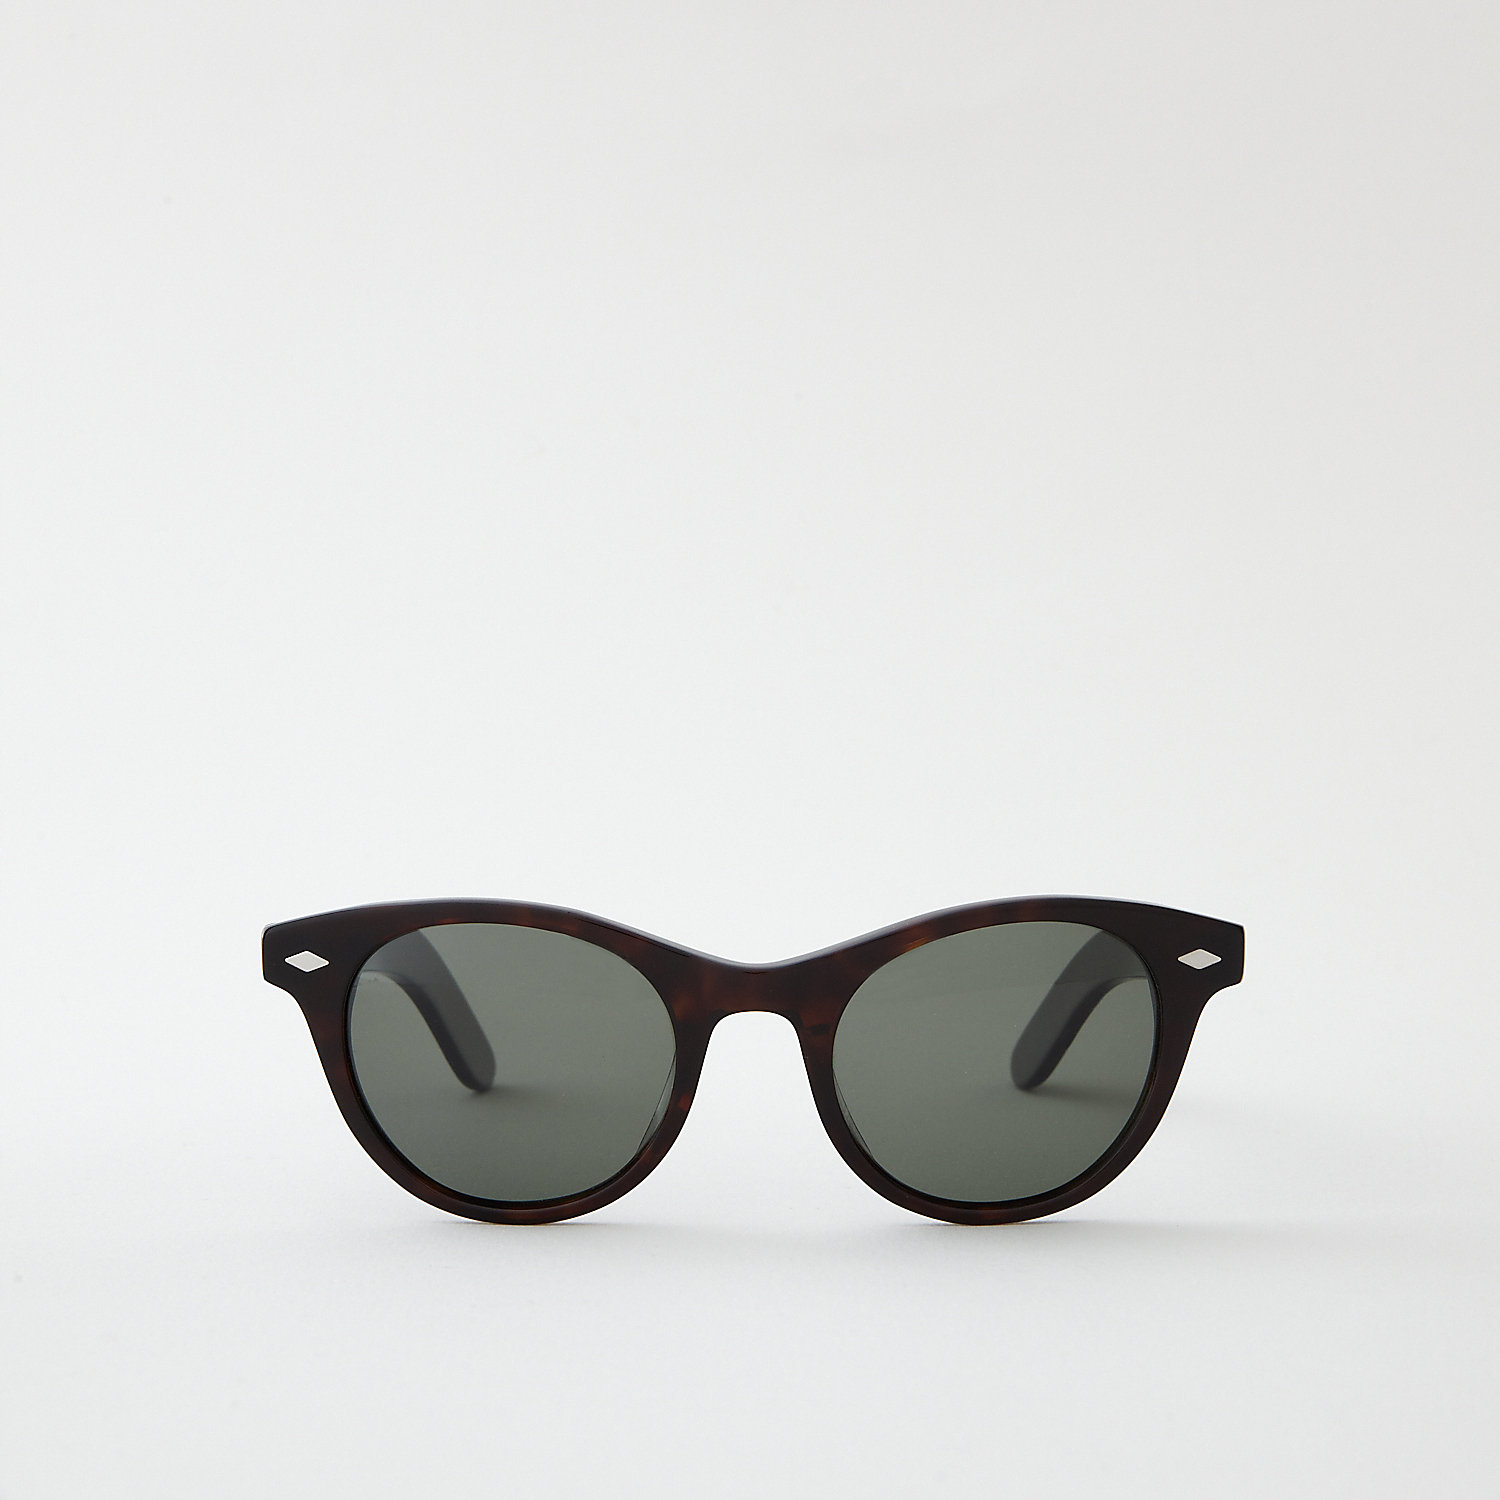 DARK TORTOISE THAYER SUNGLASSES